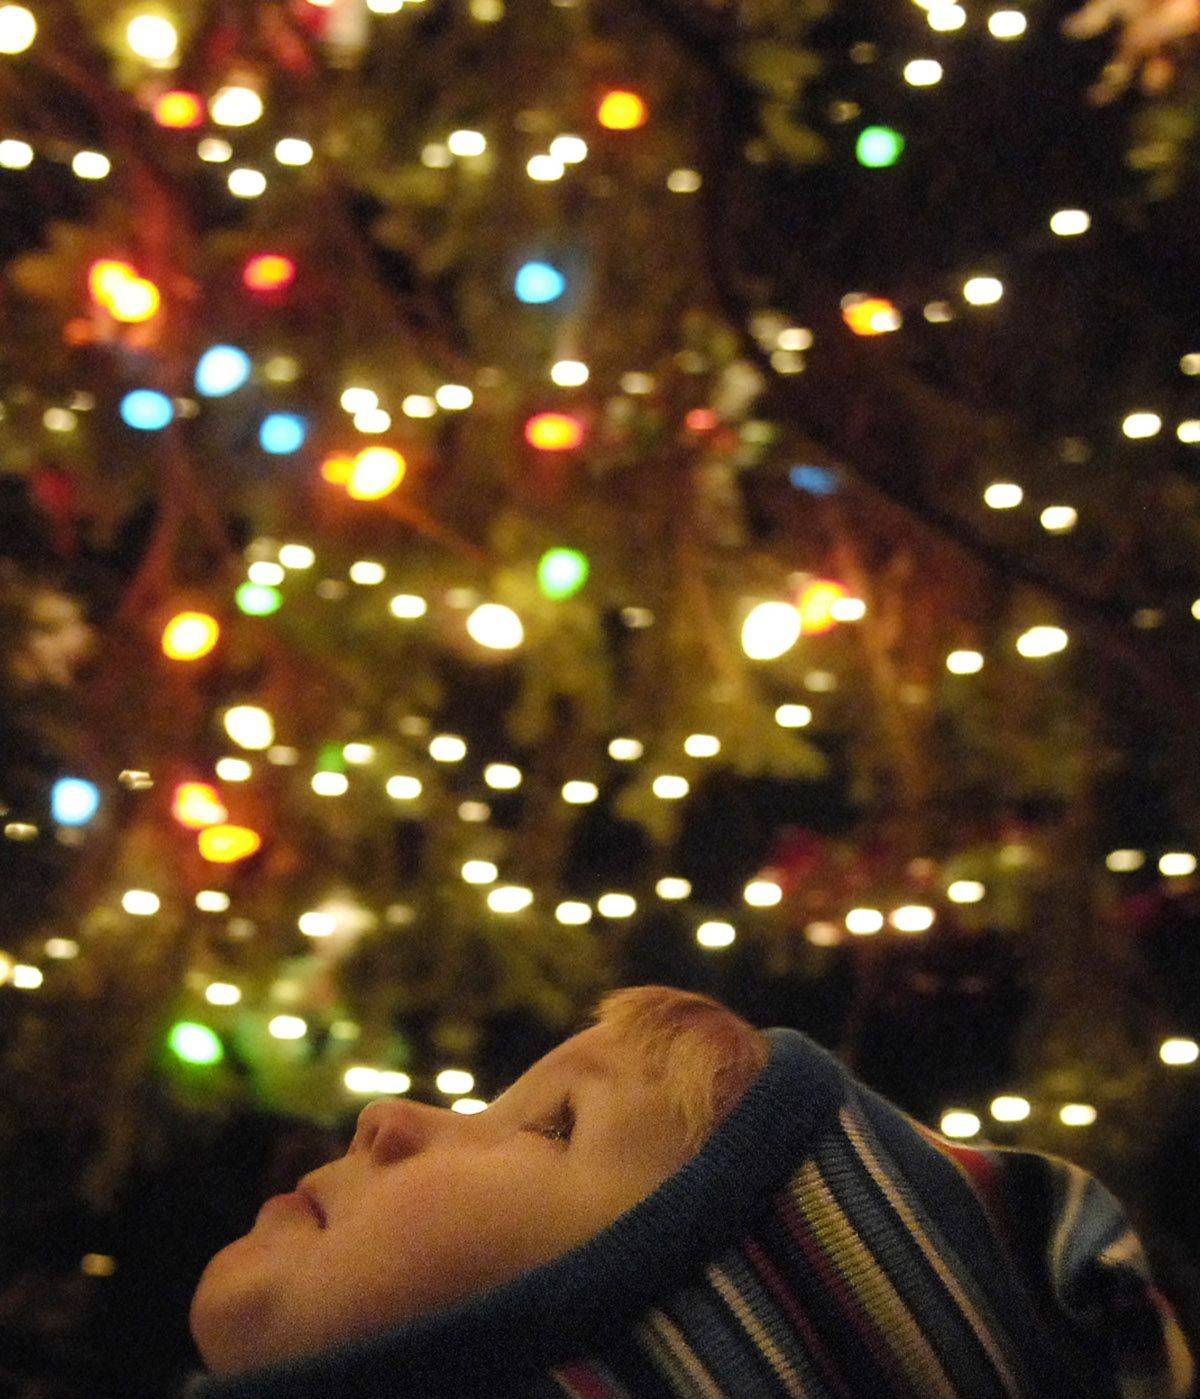 2-year-old CAmeron Ziegler of Geneva leans his head back while being held up by his mom Jody to look at the lights on the Geneva Christmas tree during the annual holiday festivities downtown Friday night.